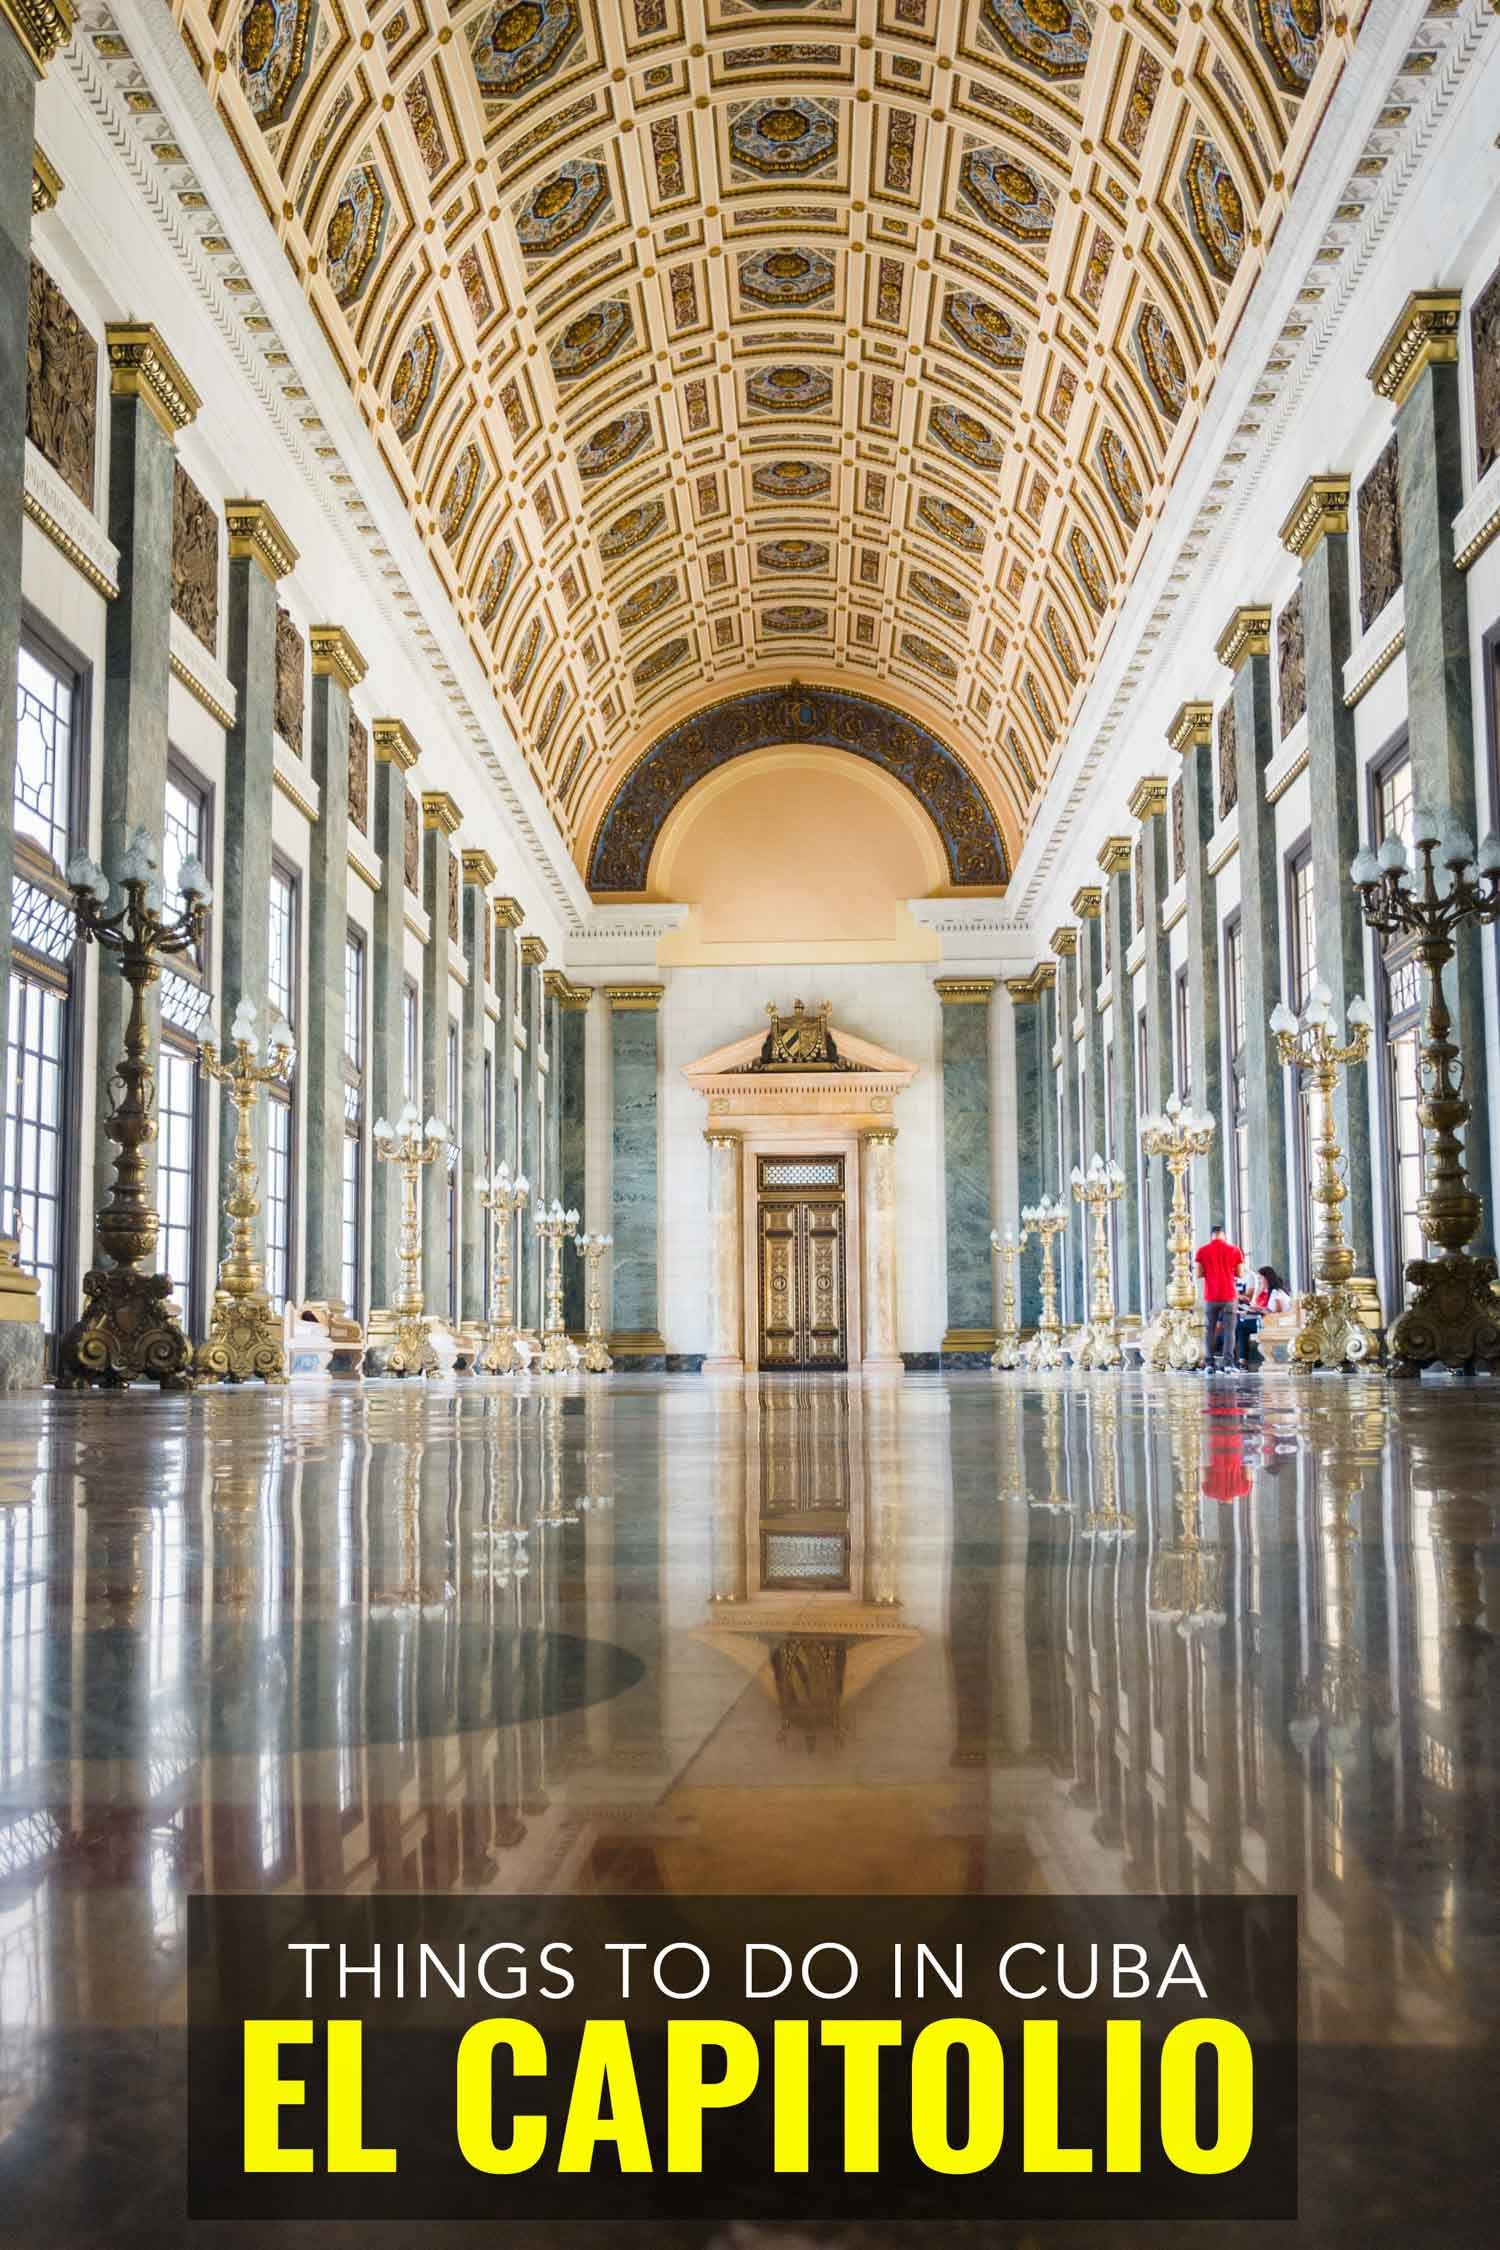 El Capitolio hallway, the capitol building in Havana Cuba has recently been restored.